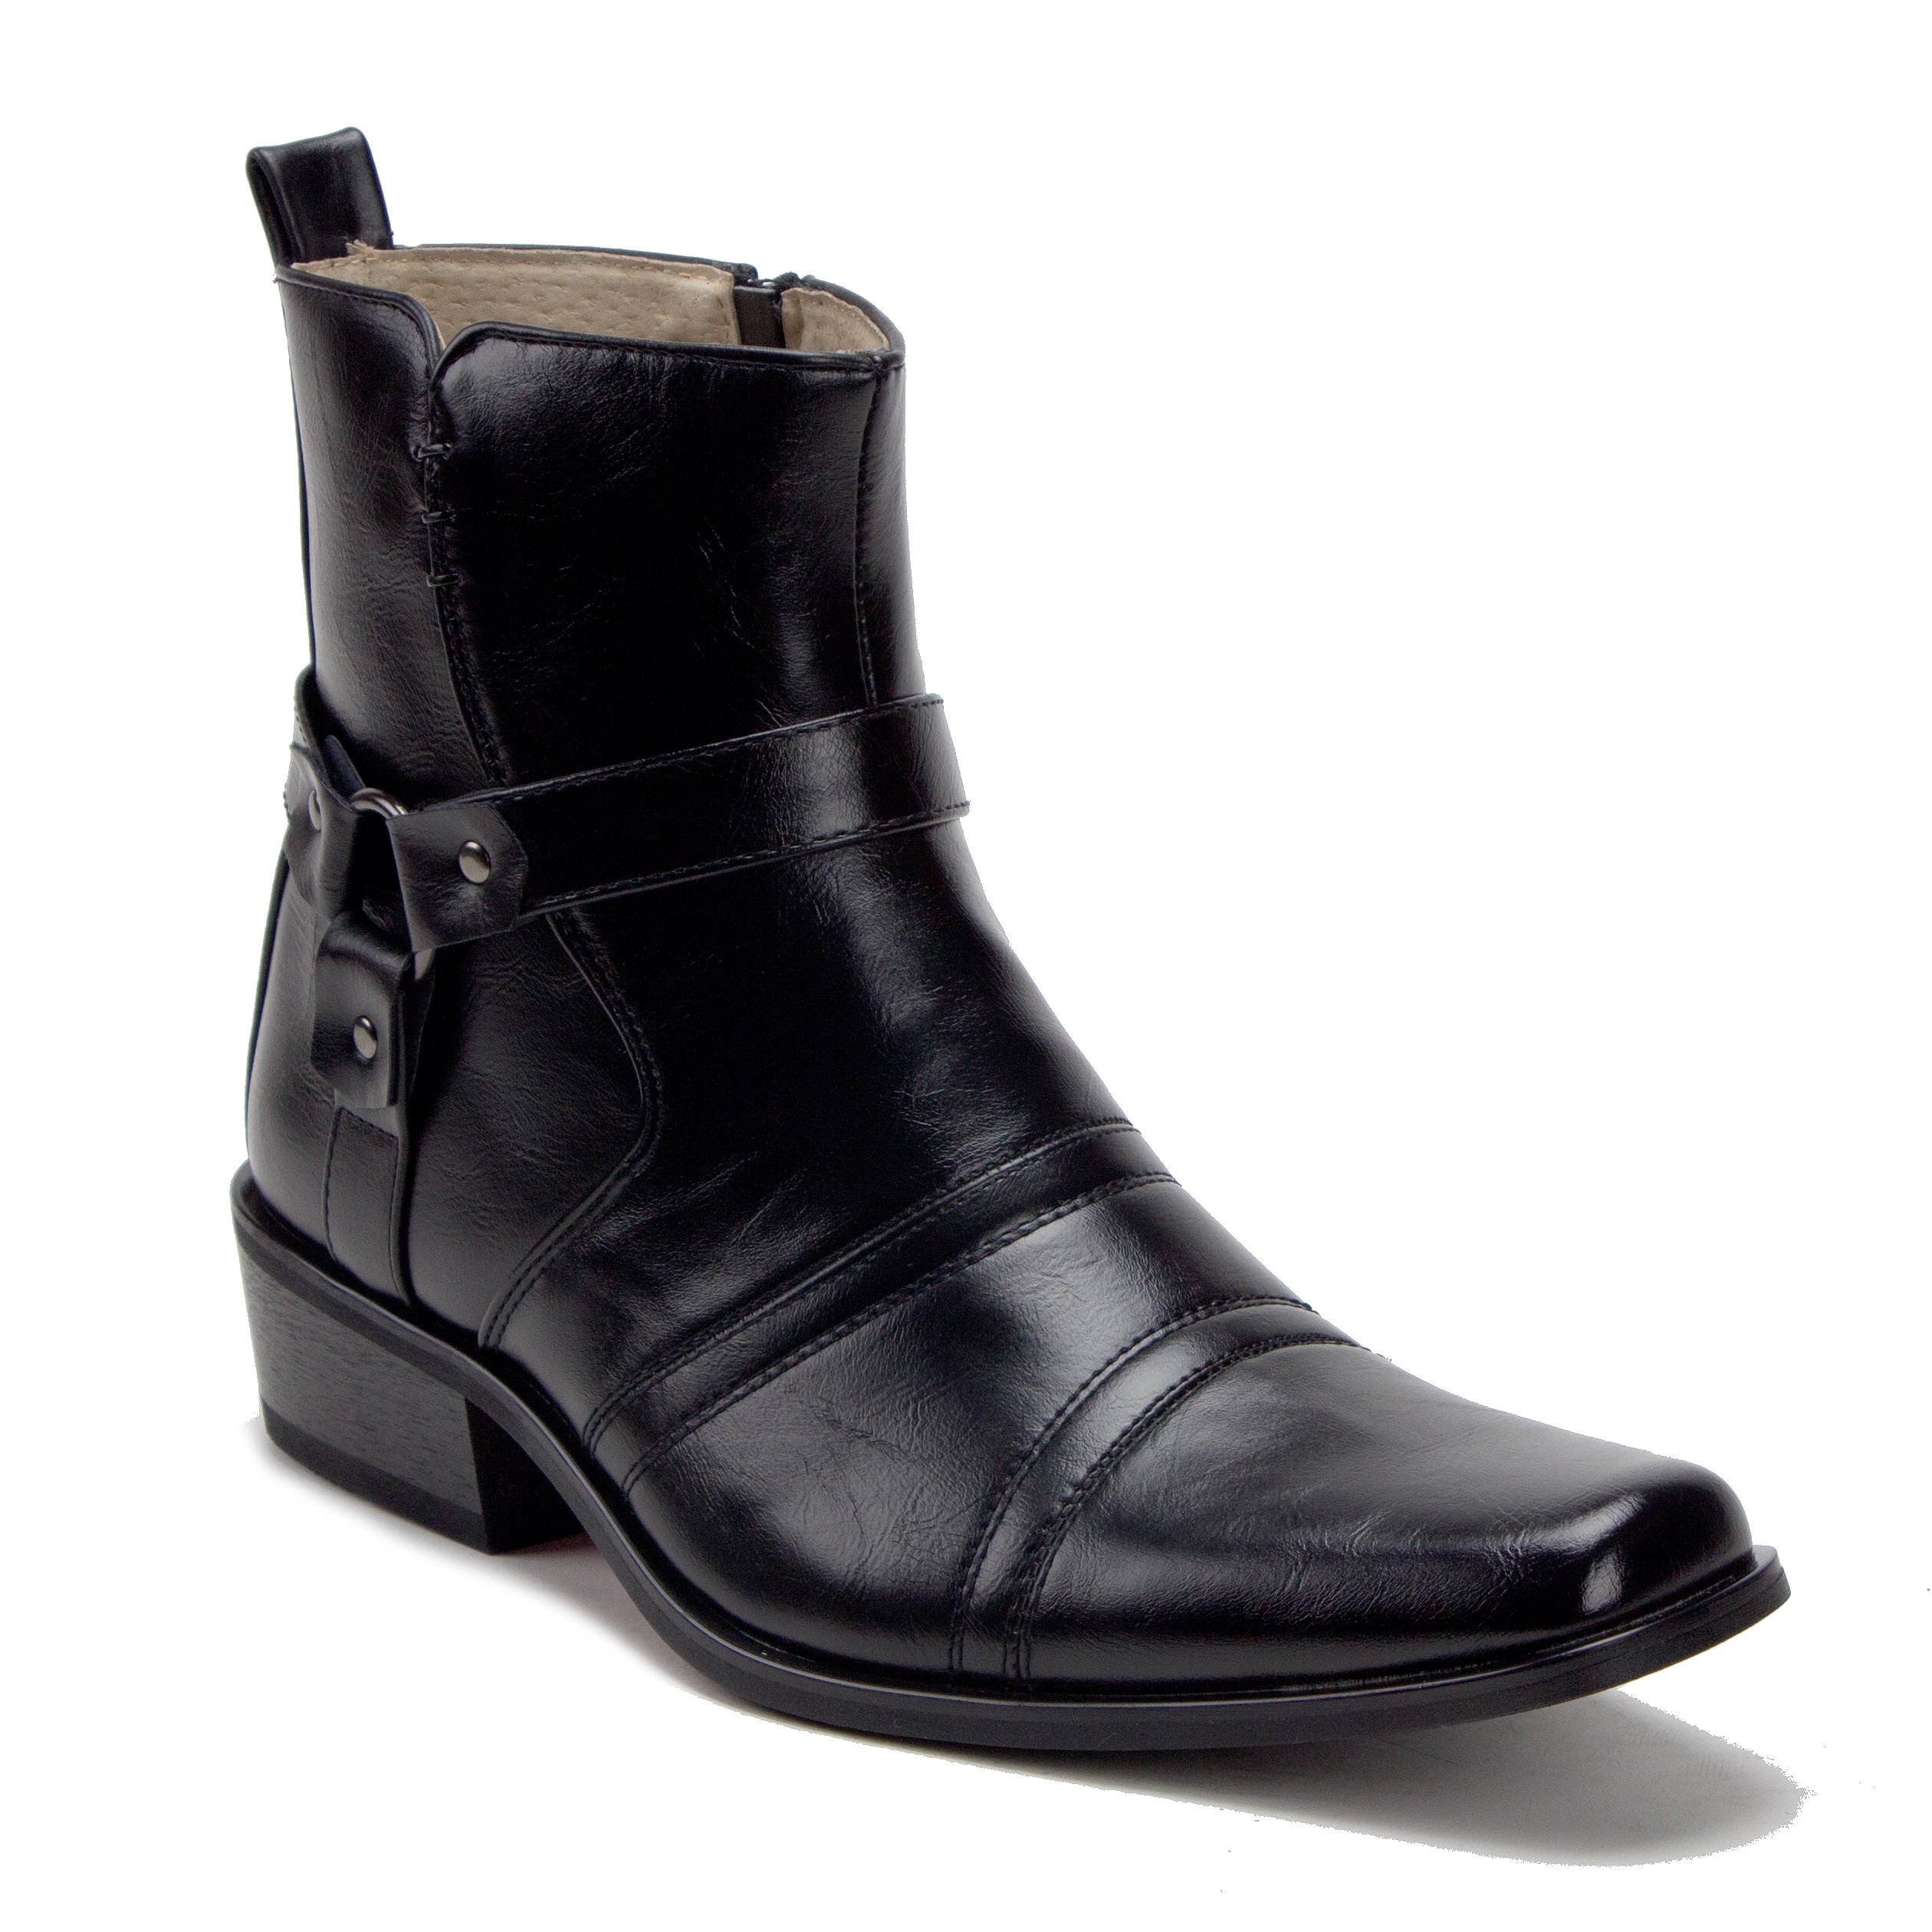 Jazame Men's 39093 Leather Lined Tall Western Style Cowboy Dress Boots, Black, 11